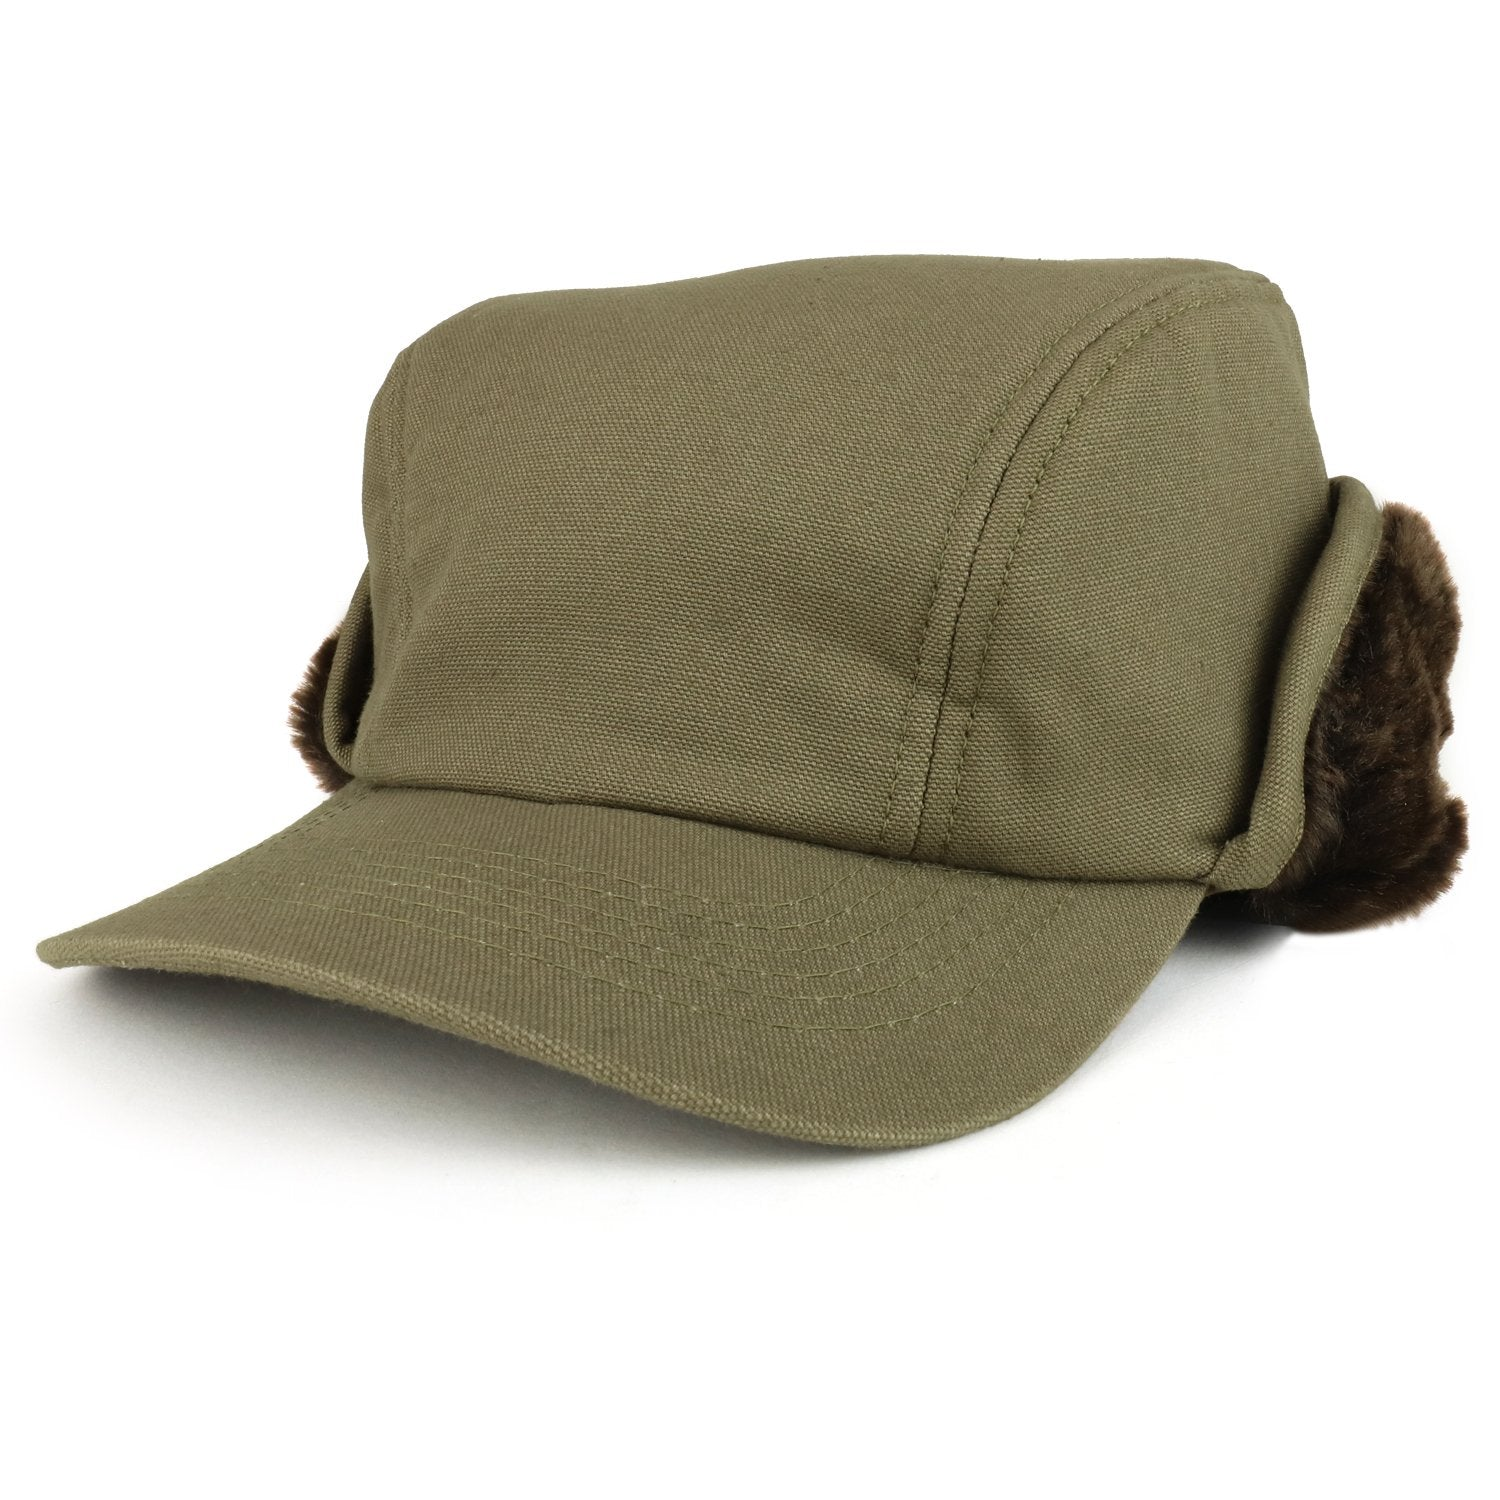 5134a0ec0 Armycrew Men's Duck Work Superior Cotton Winter Ball Cap with Earflap